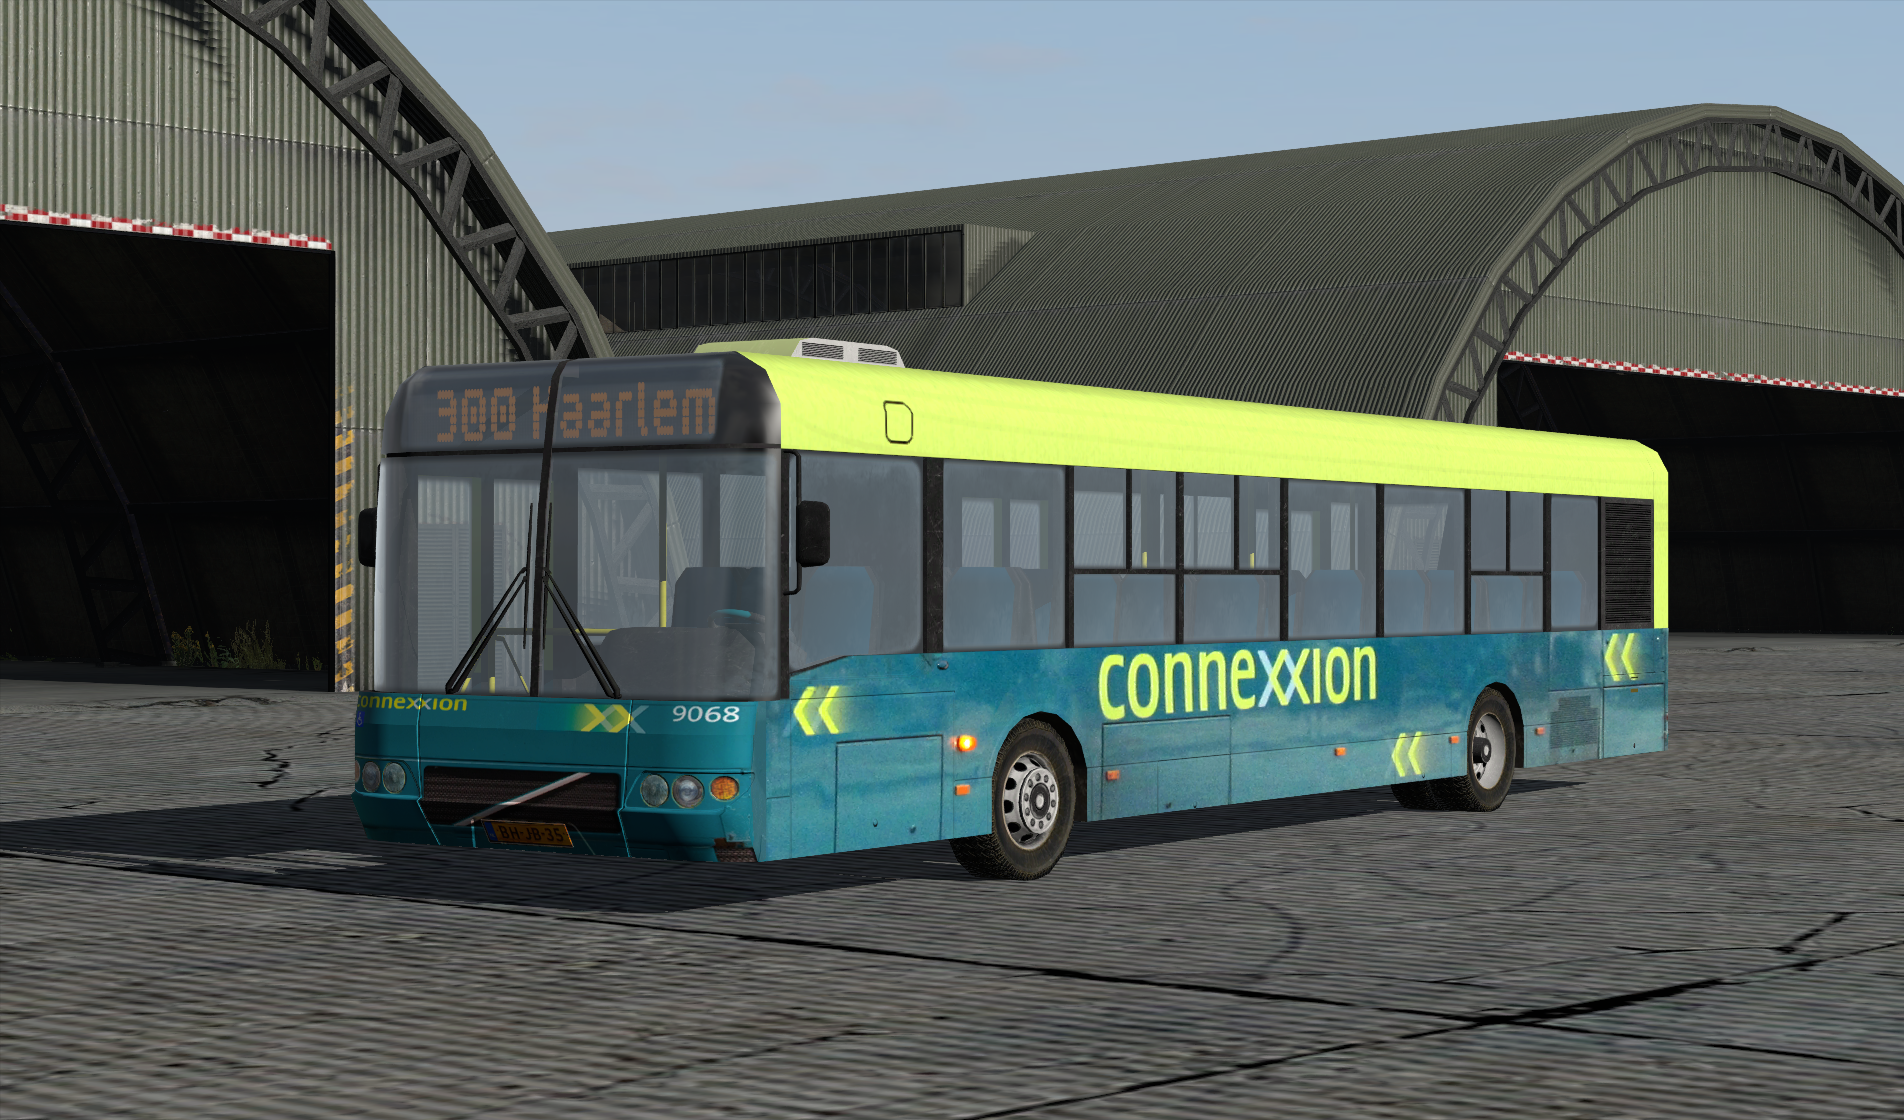 Dutch Armed Forces v0.96 CityBus